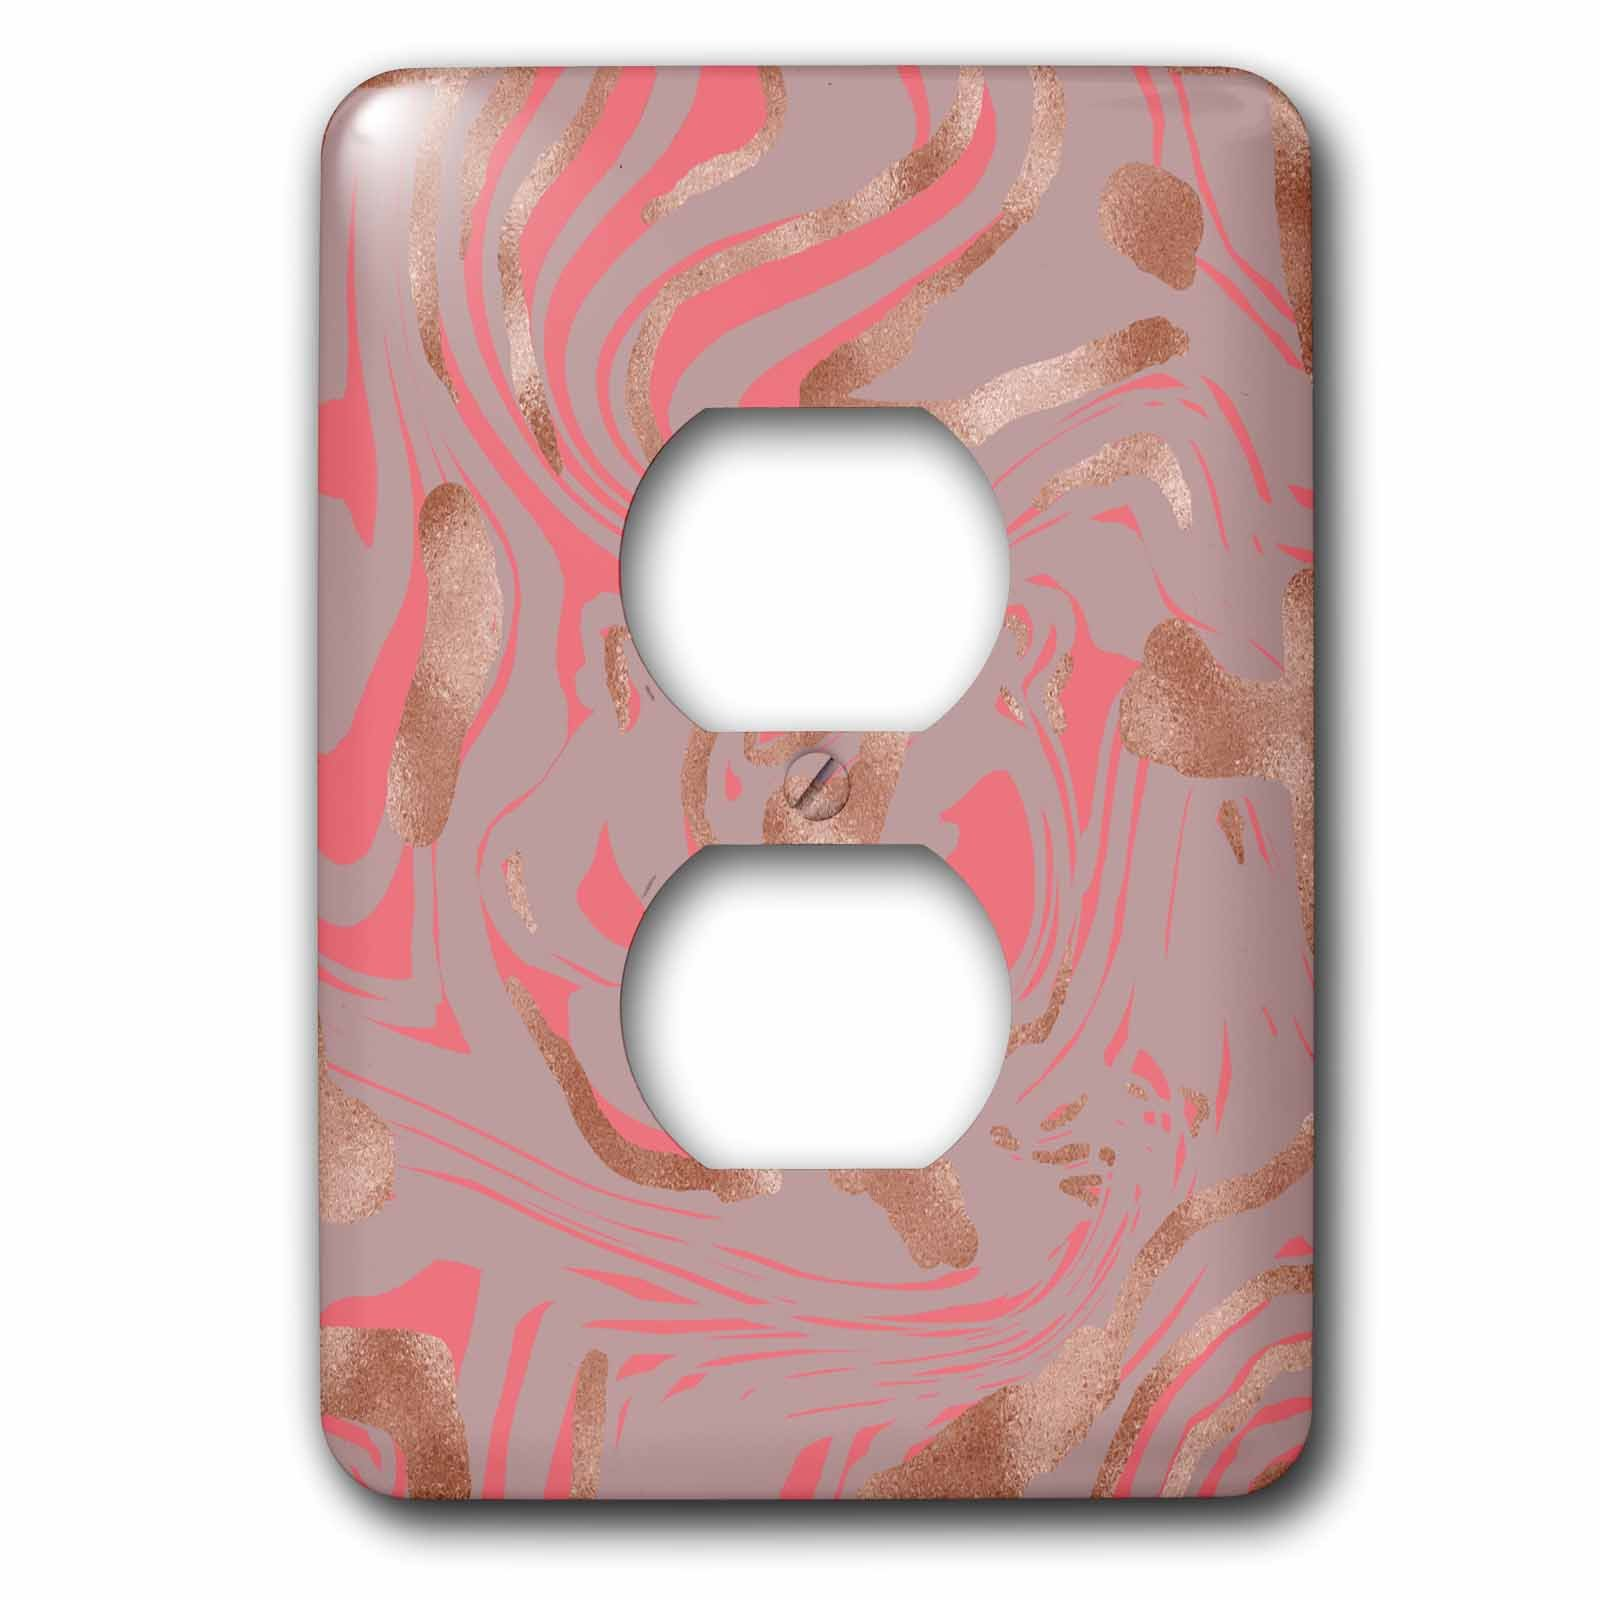 3dRose Anne Marie Baugh - Pattern - Image of Bronze and Pink Marbling On A Purple Background - Light Switch Covers - 2 plug outlet cover (lsp_267601_6)